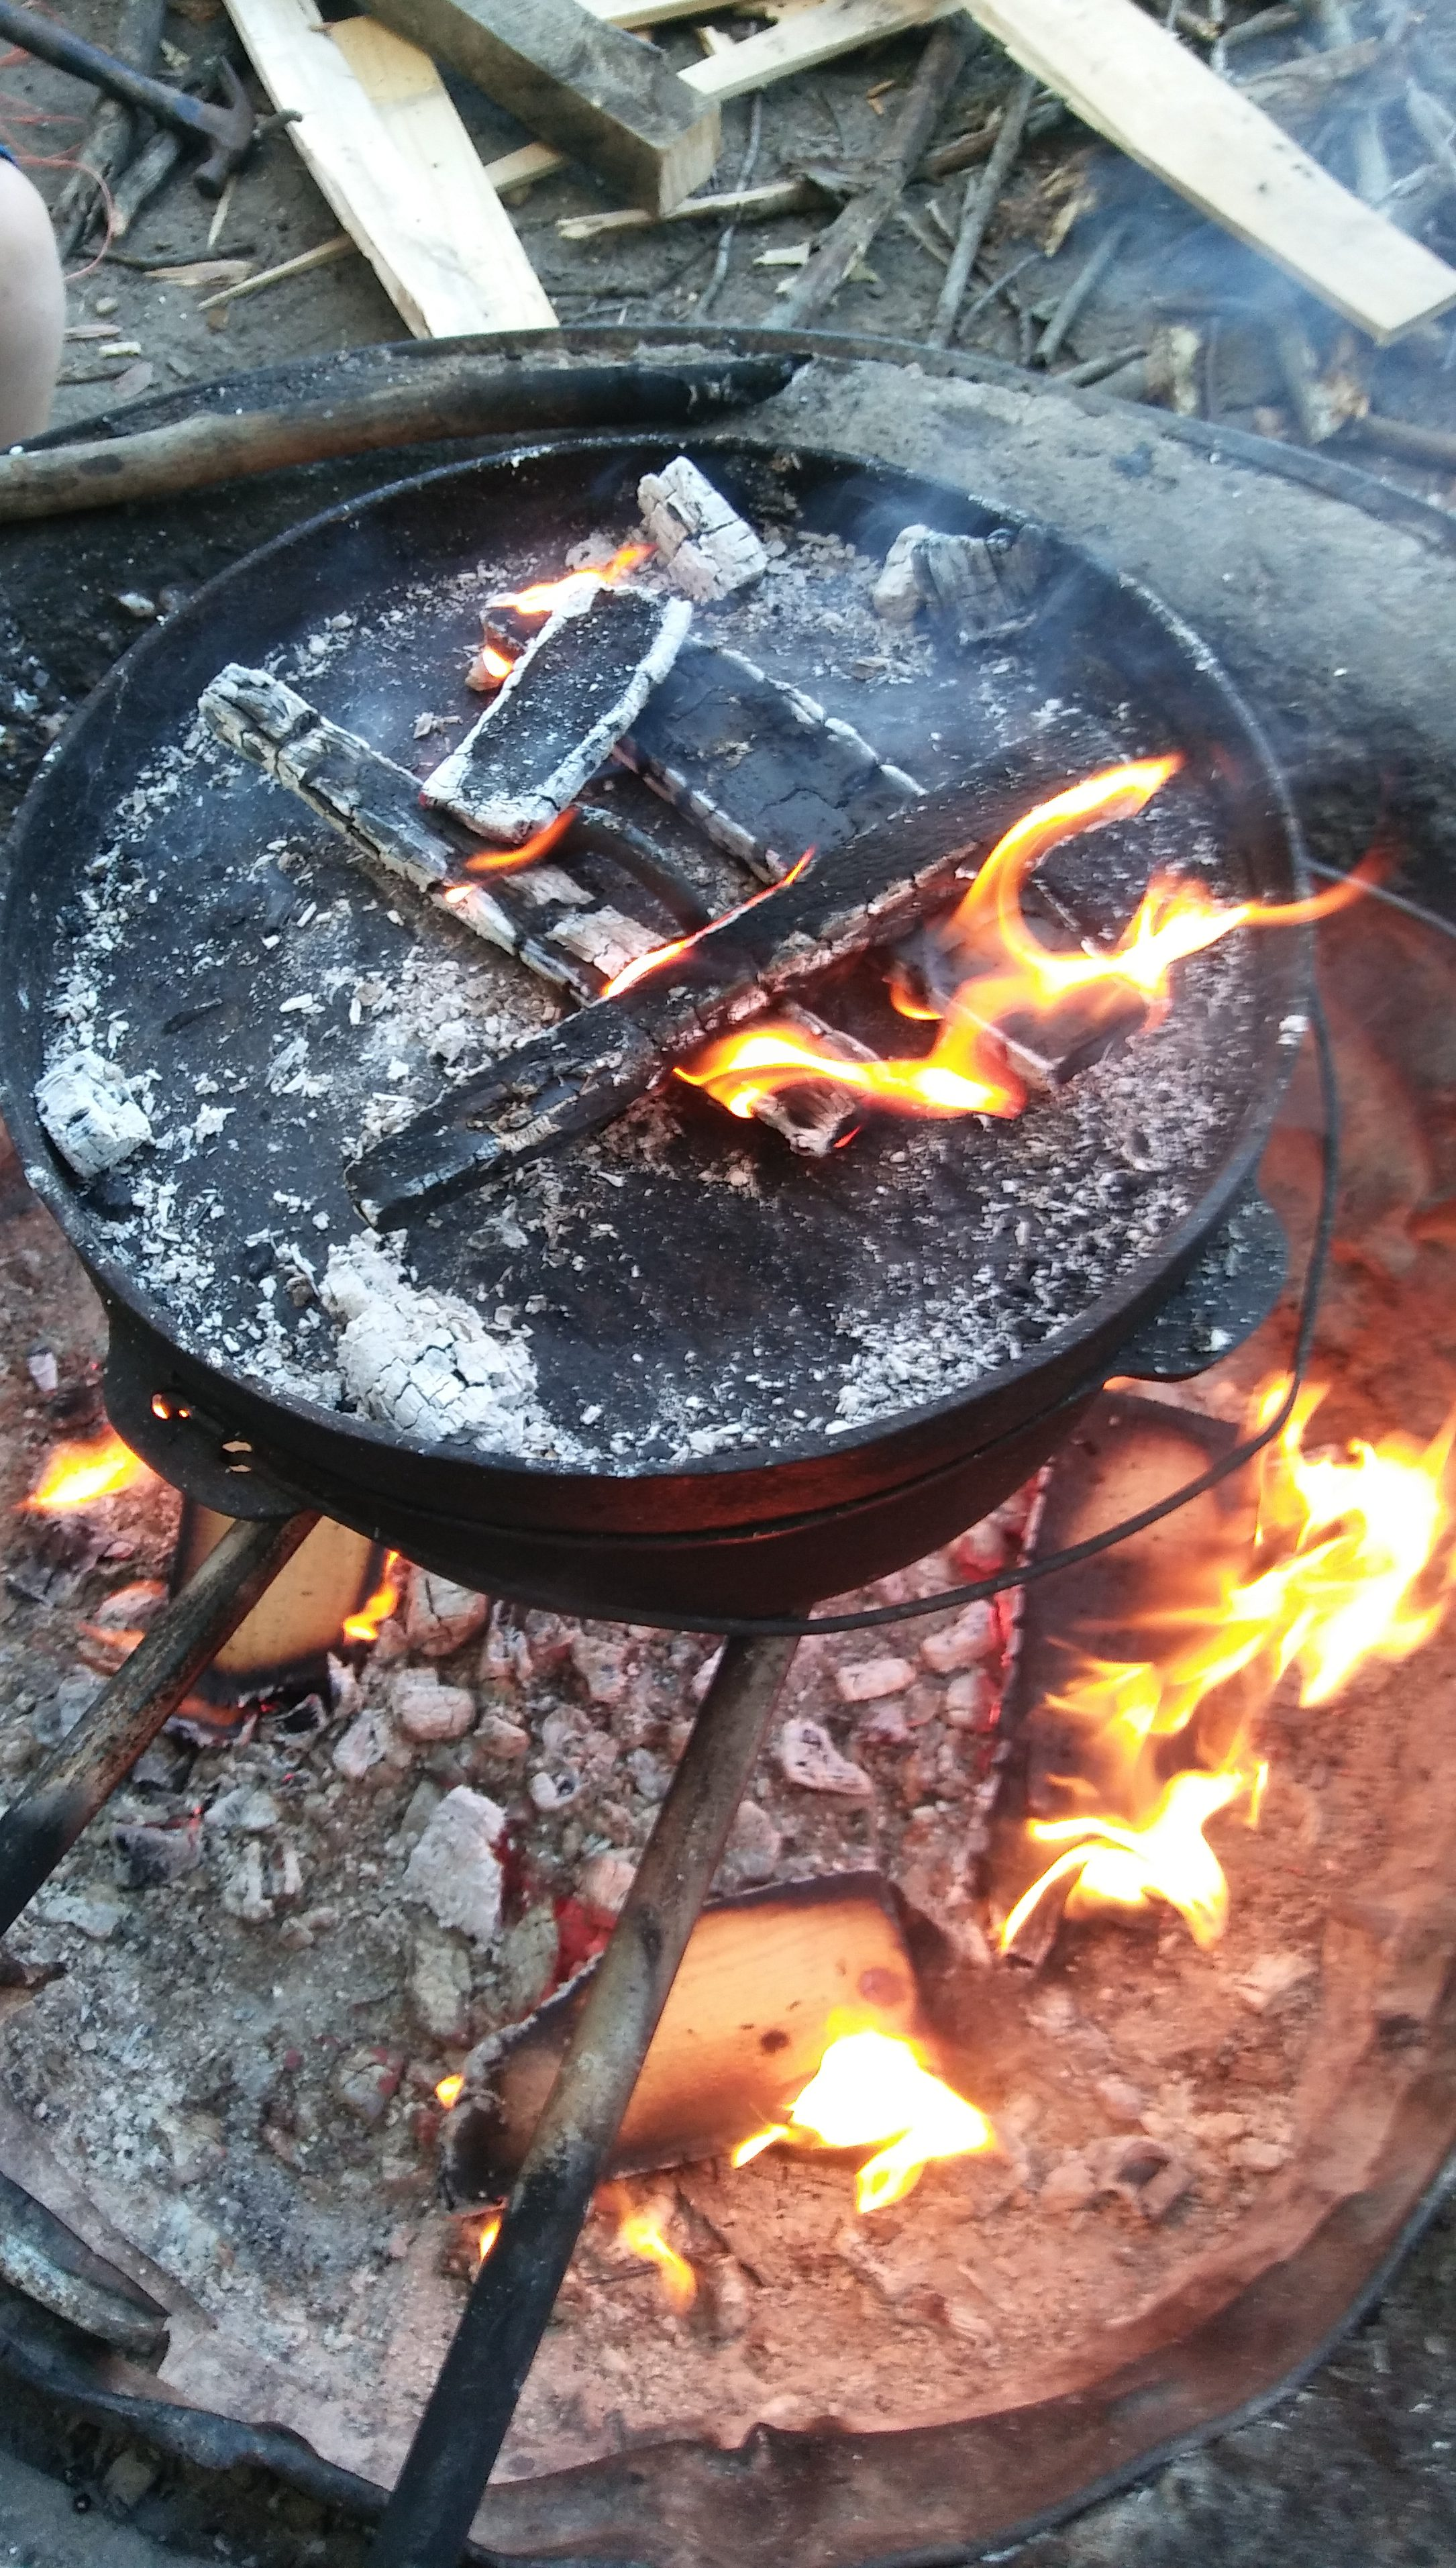 Cooking Over An Open Fire Pit | Is Dinner Ready Yet?